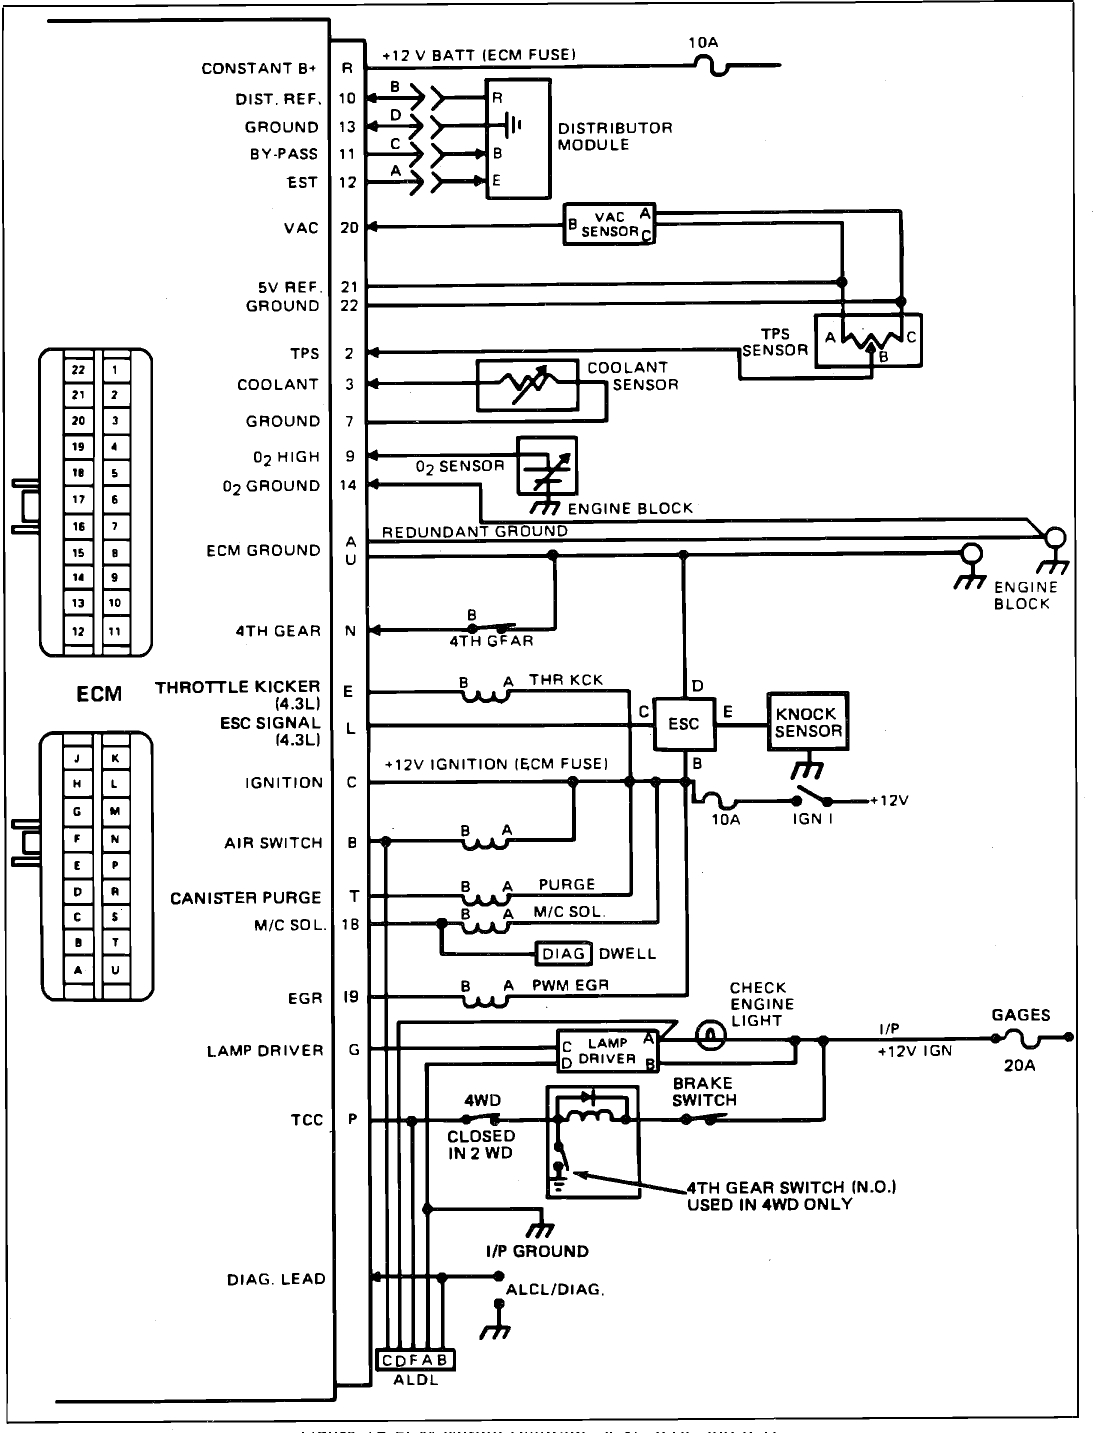 original i need a fuse box diagram with wiring colors Chevrolet G10 at readyjetset.co